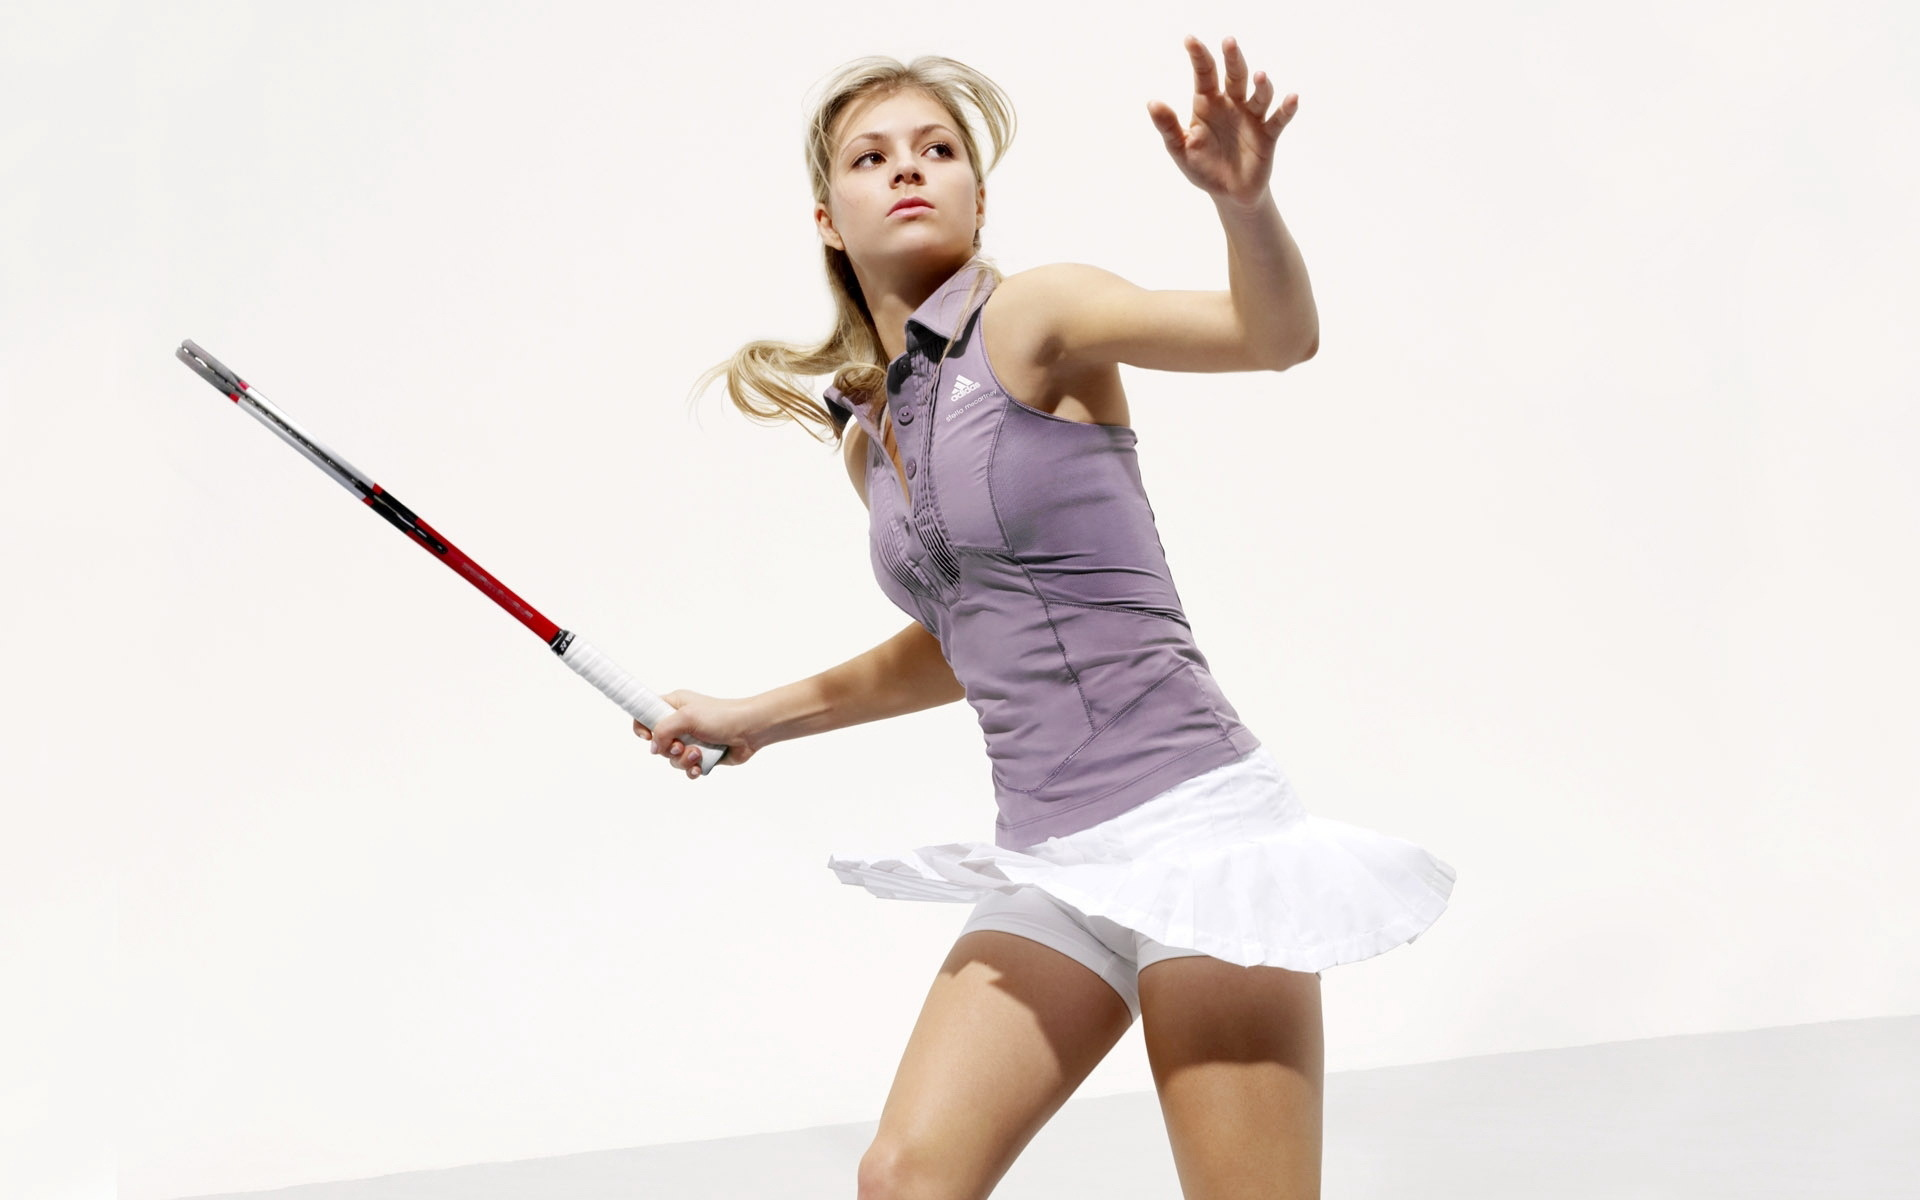 Sports Girls Wallpaper: Cute Maria Kirilenko (Tennis Player) Wallpapers